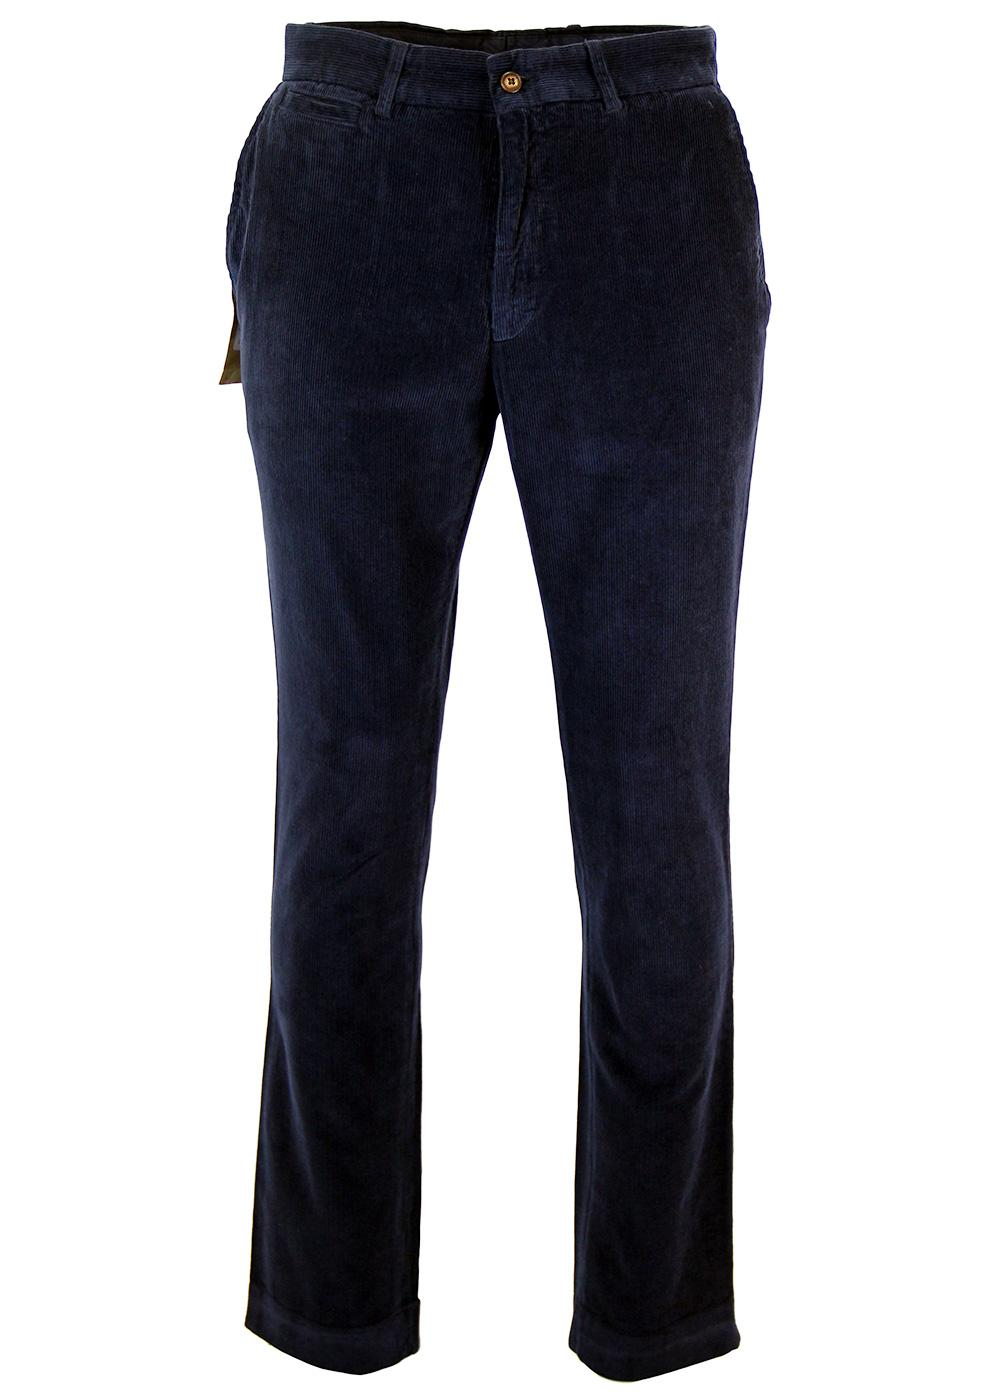 GIBSON LONDON Retro Mod Cord Trousers